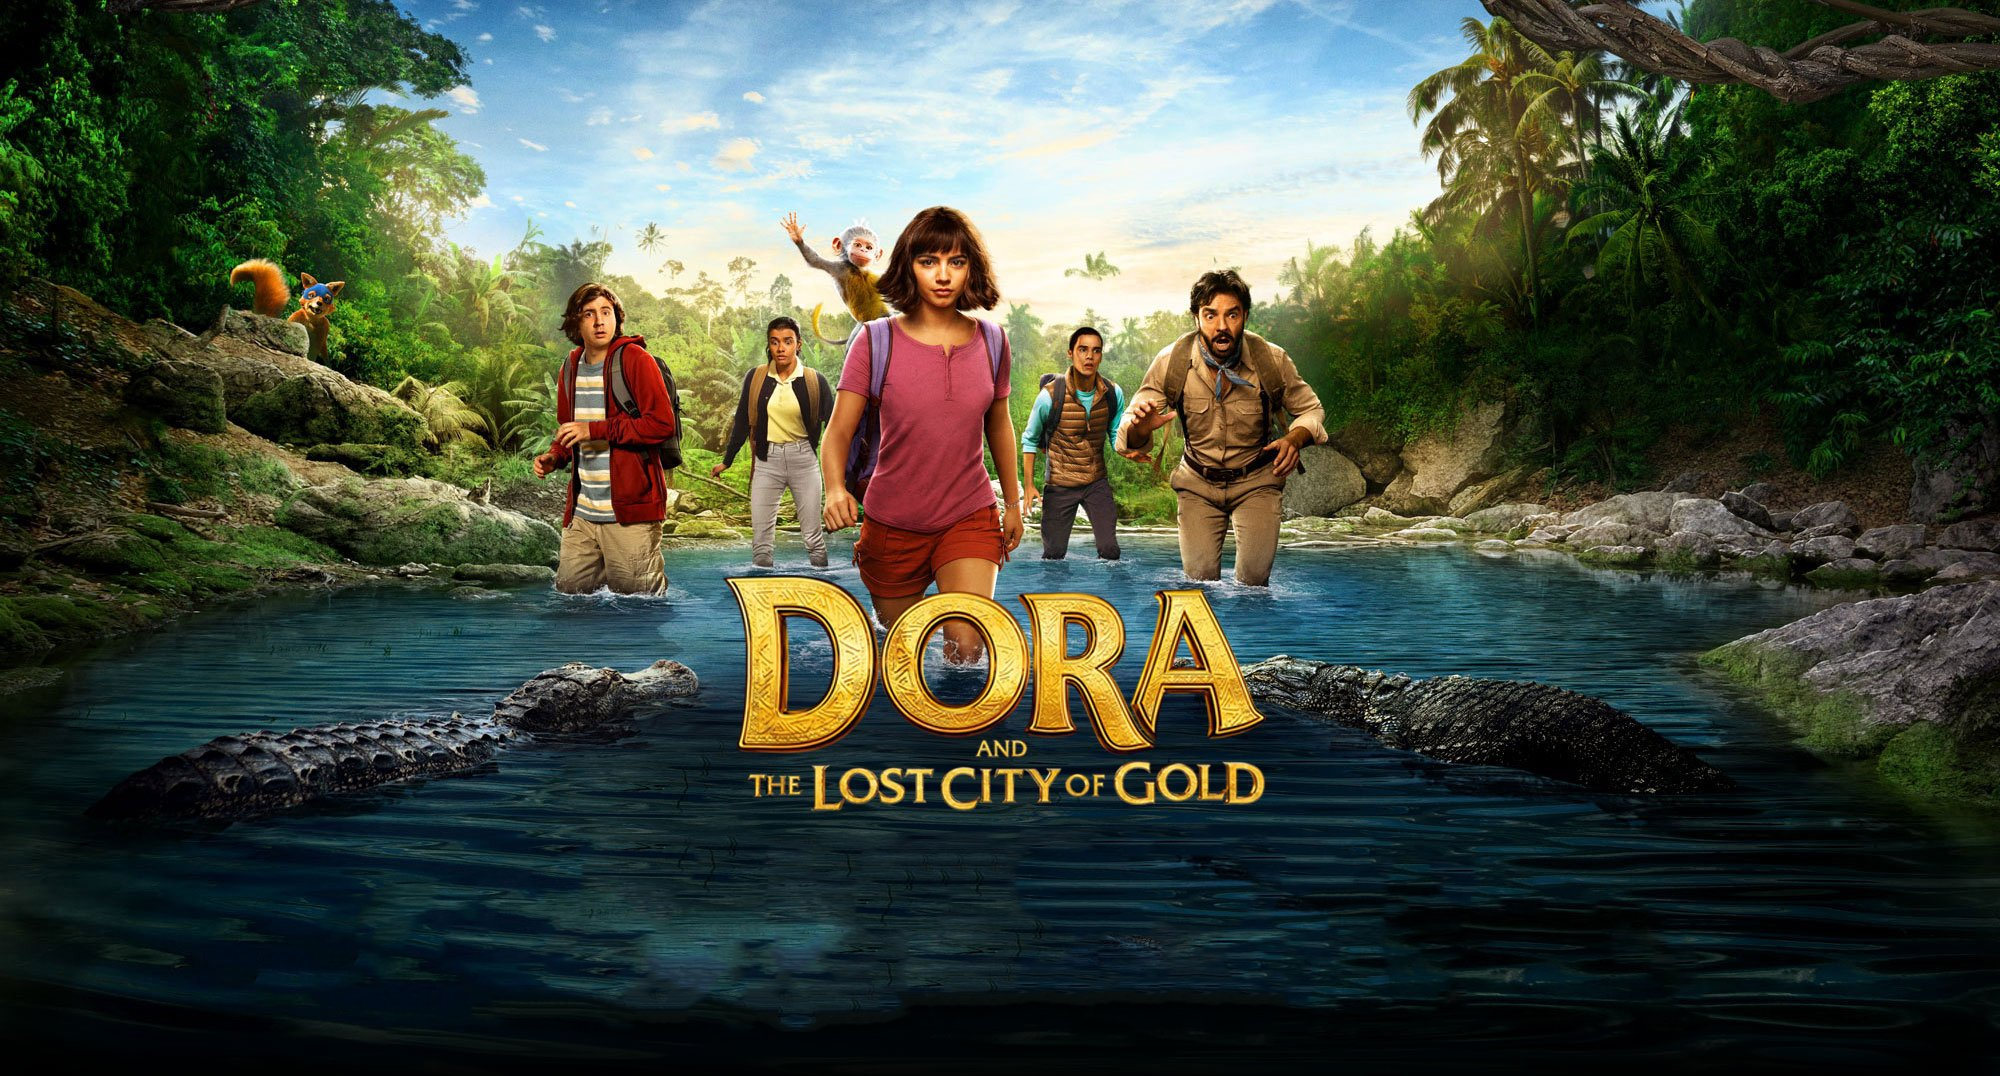 Dora And The Lost City Of Gold 2019 Wallpaper HD Movies 4K 2000x1076